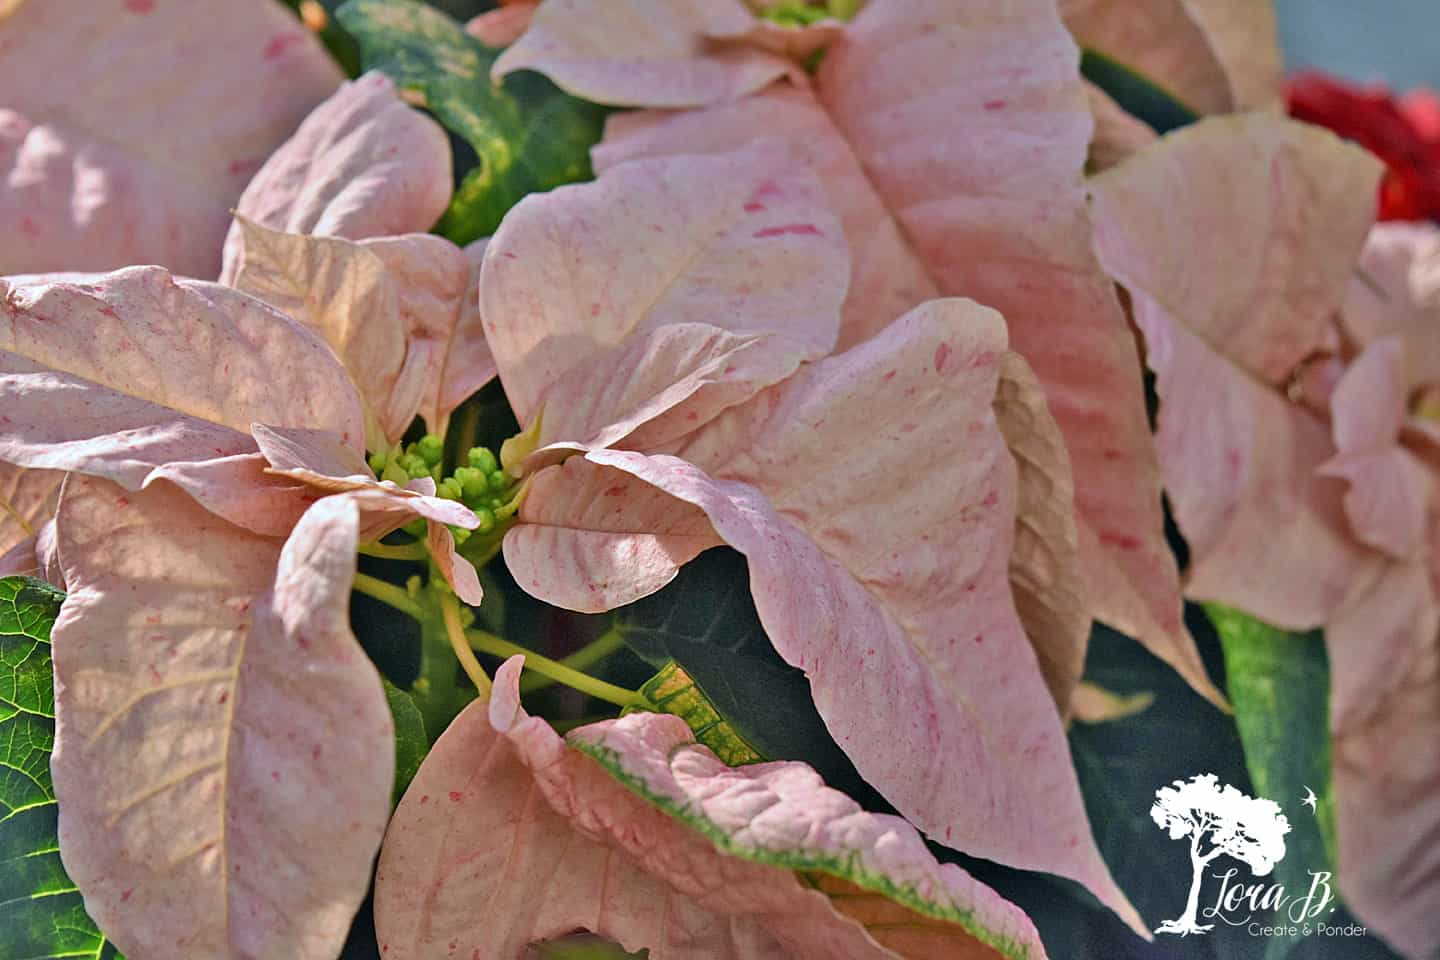 Blush-colored Poinsettia